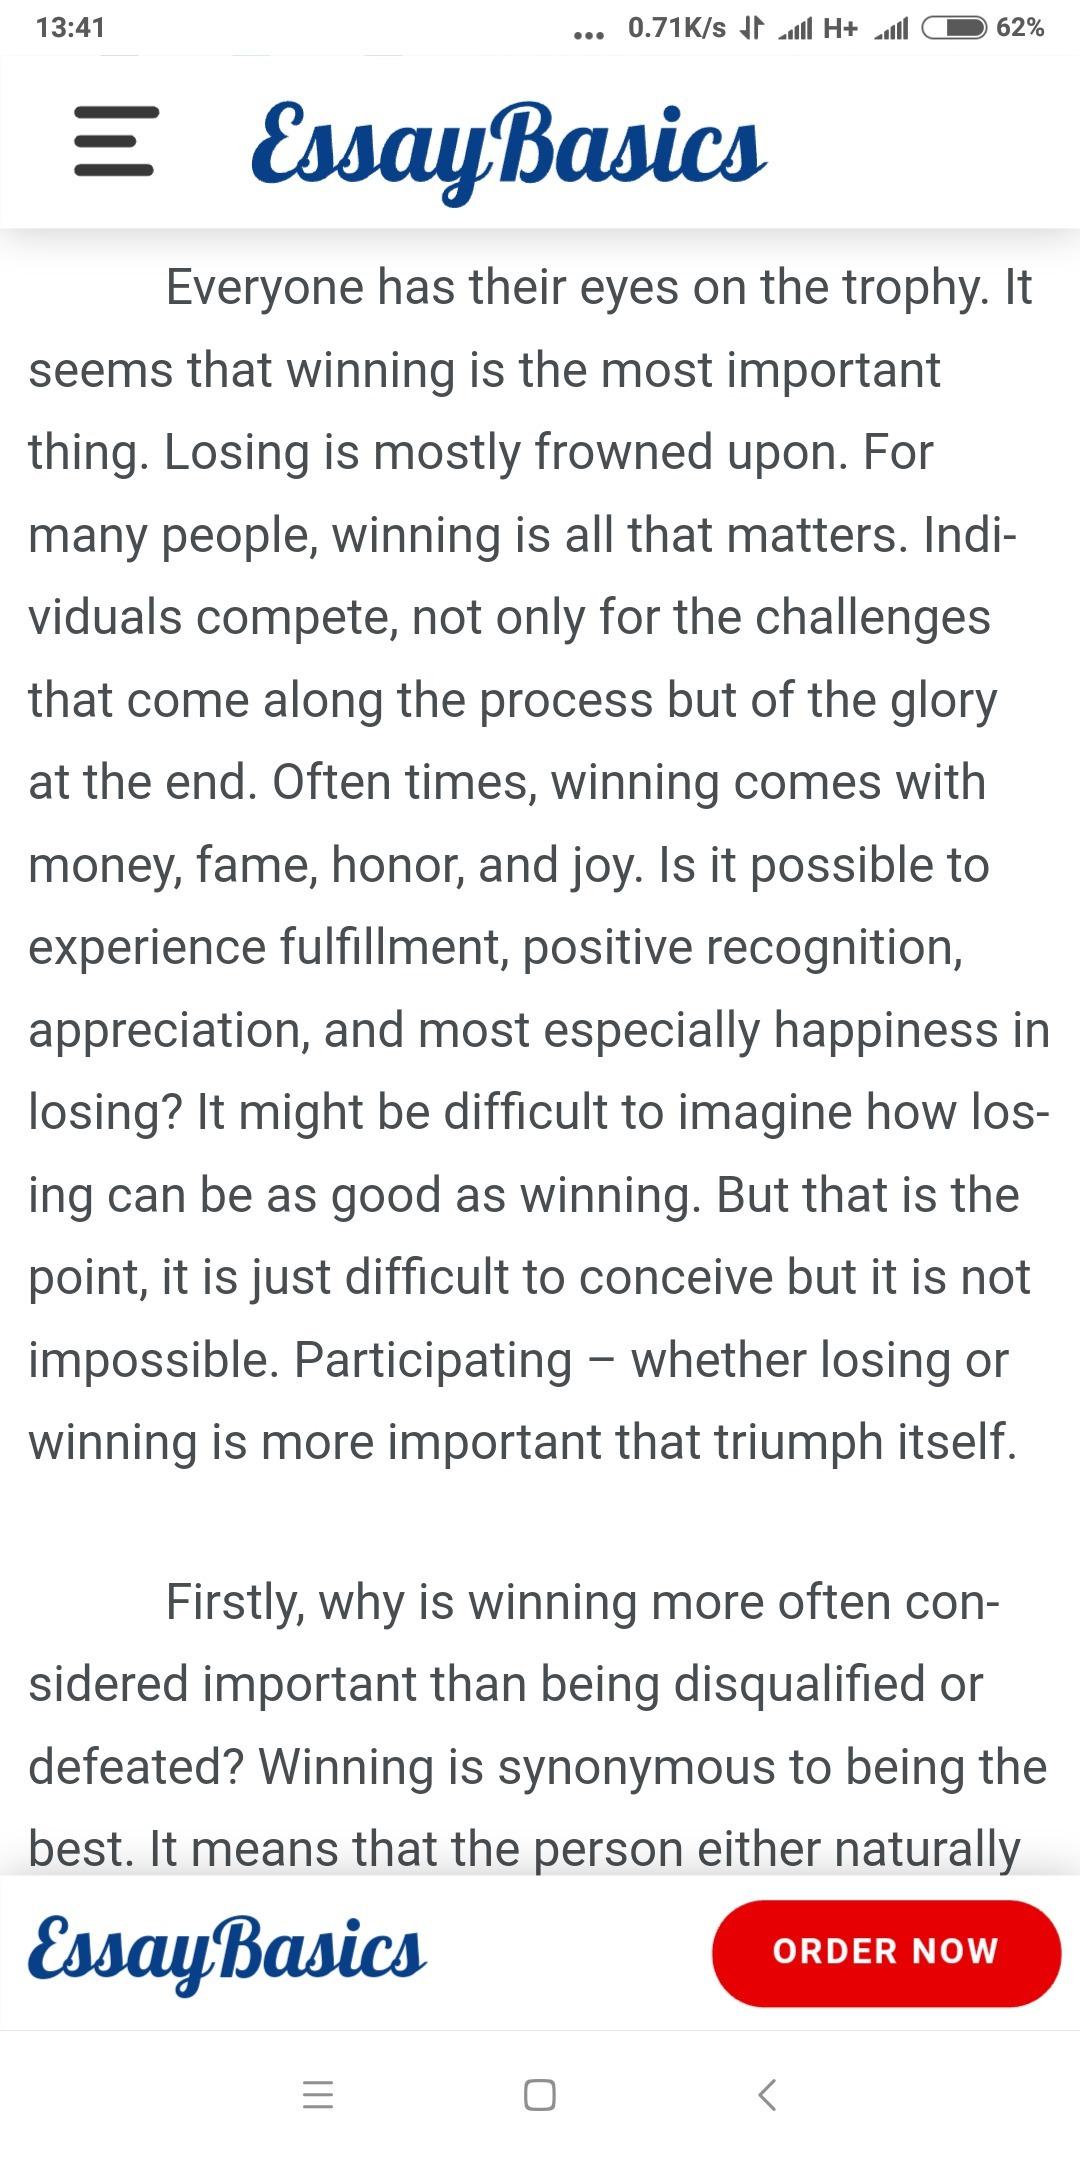 short poem on participation is more important than winning